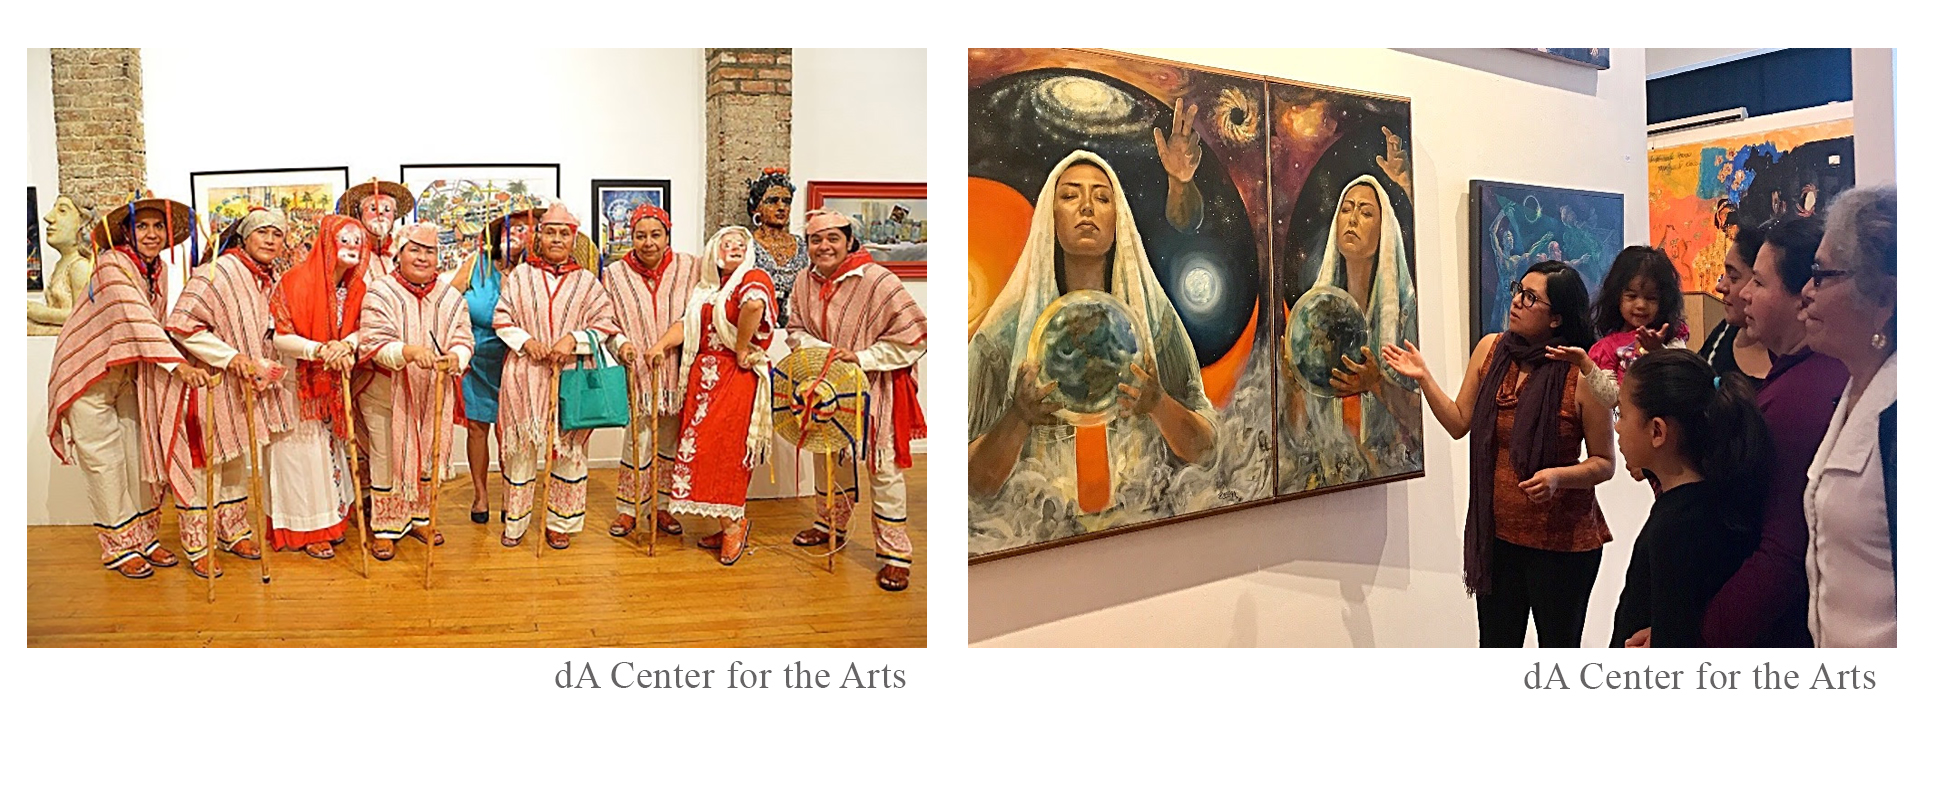 dA center for the arts Dec 2017.jpg